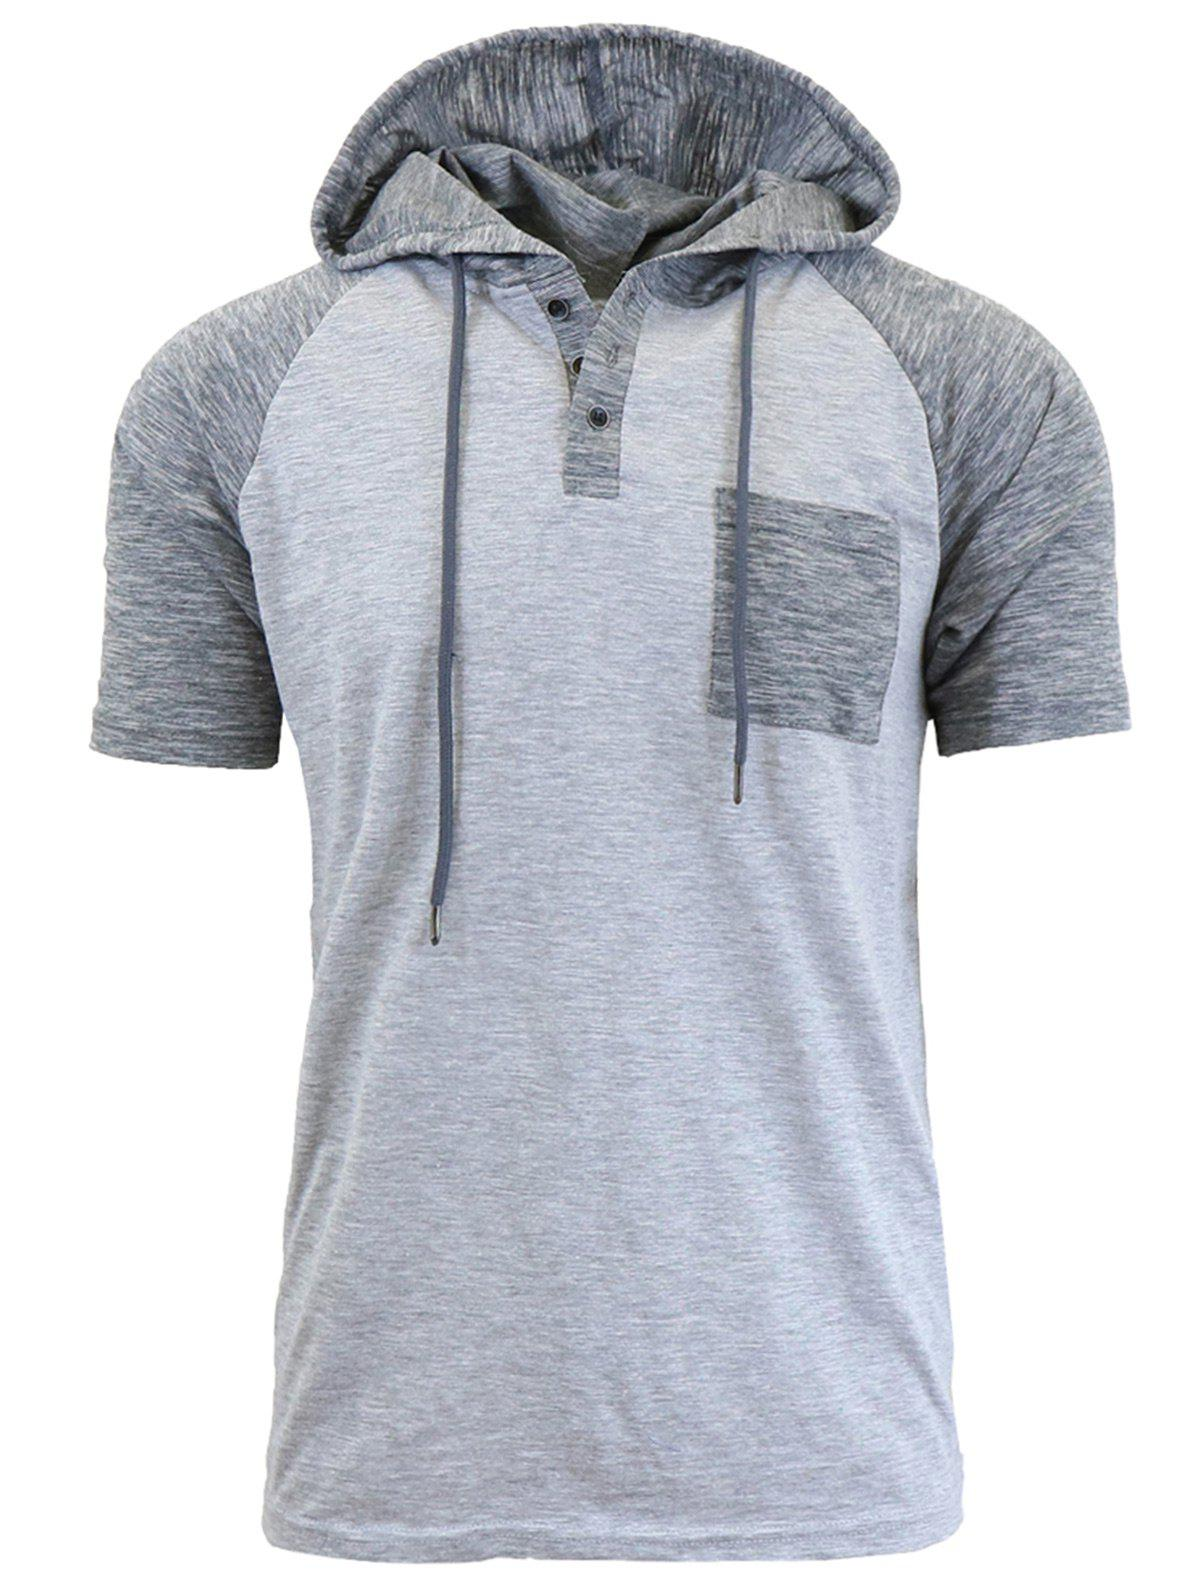 Discount Panel Design Hooded Drawstring Raglan Sleeve T-shirt